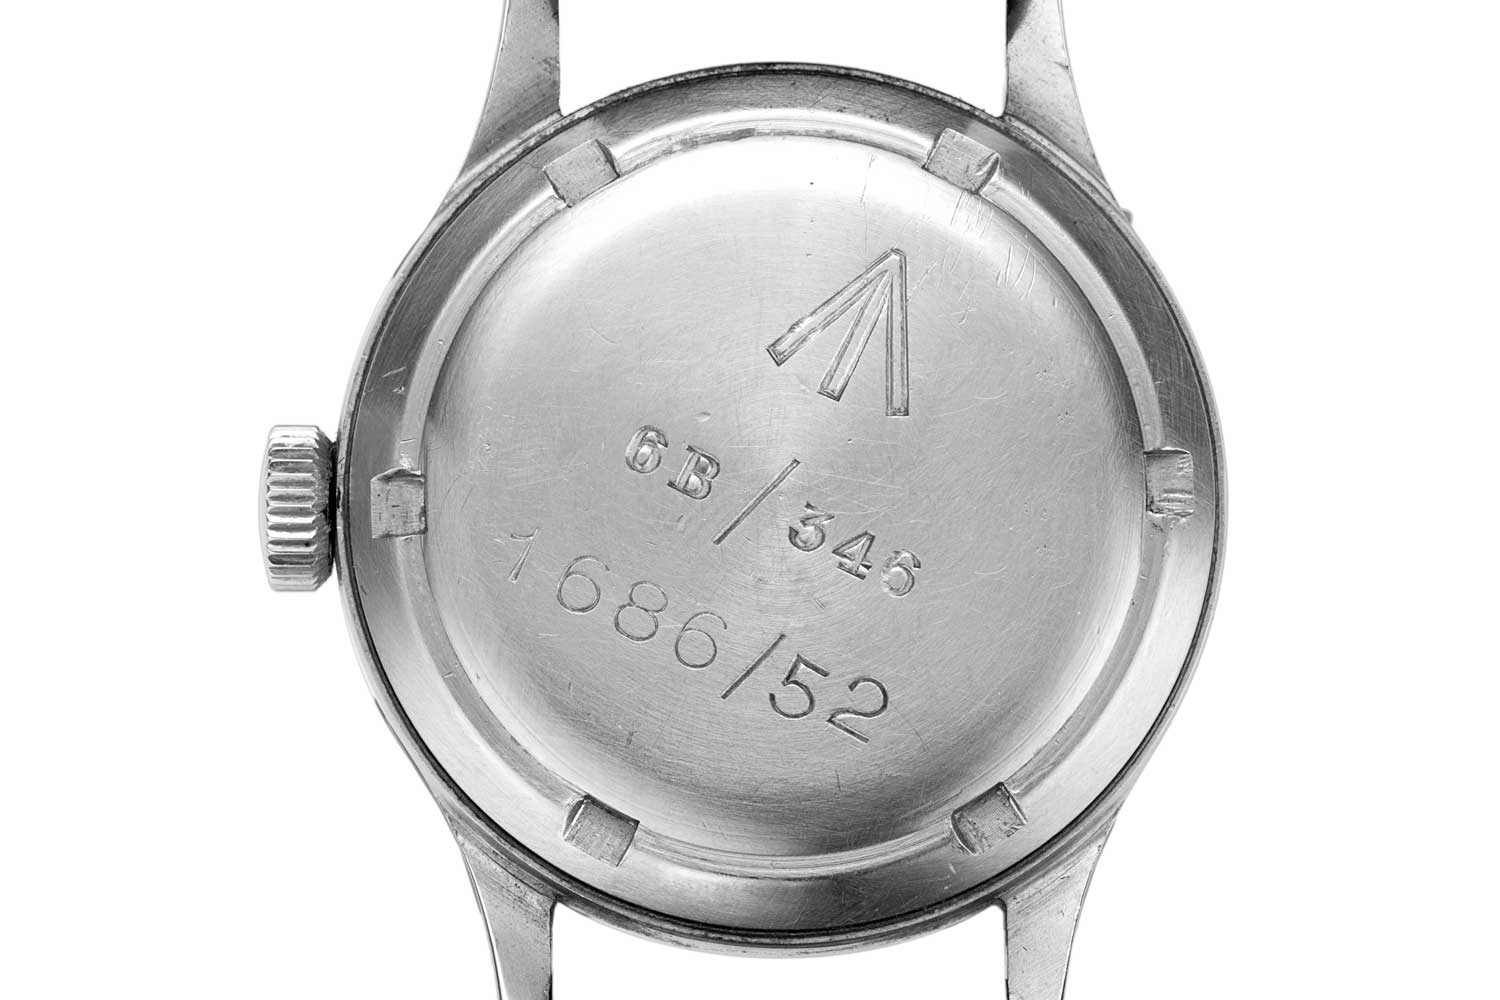 Caseback of a Mark XI with military engravings